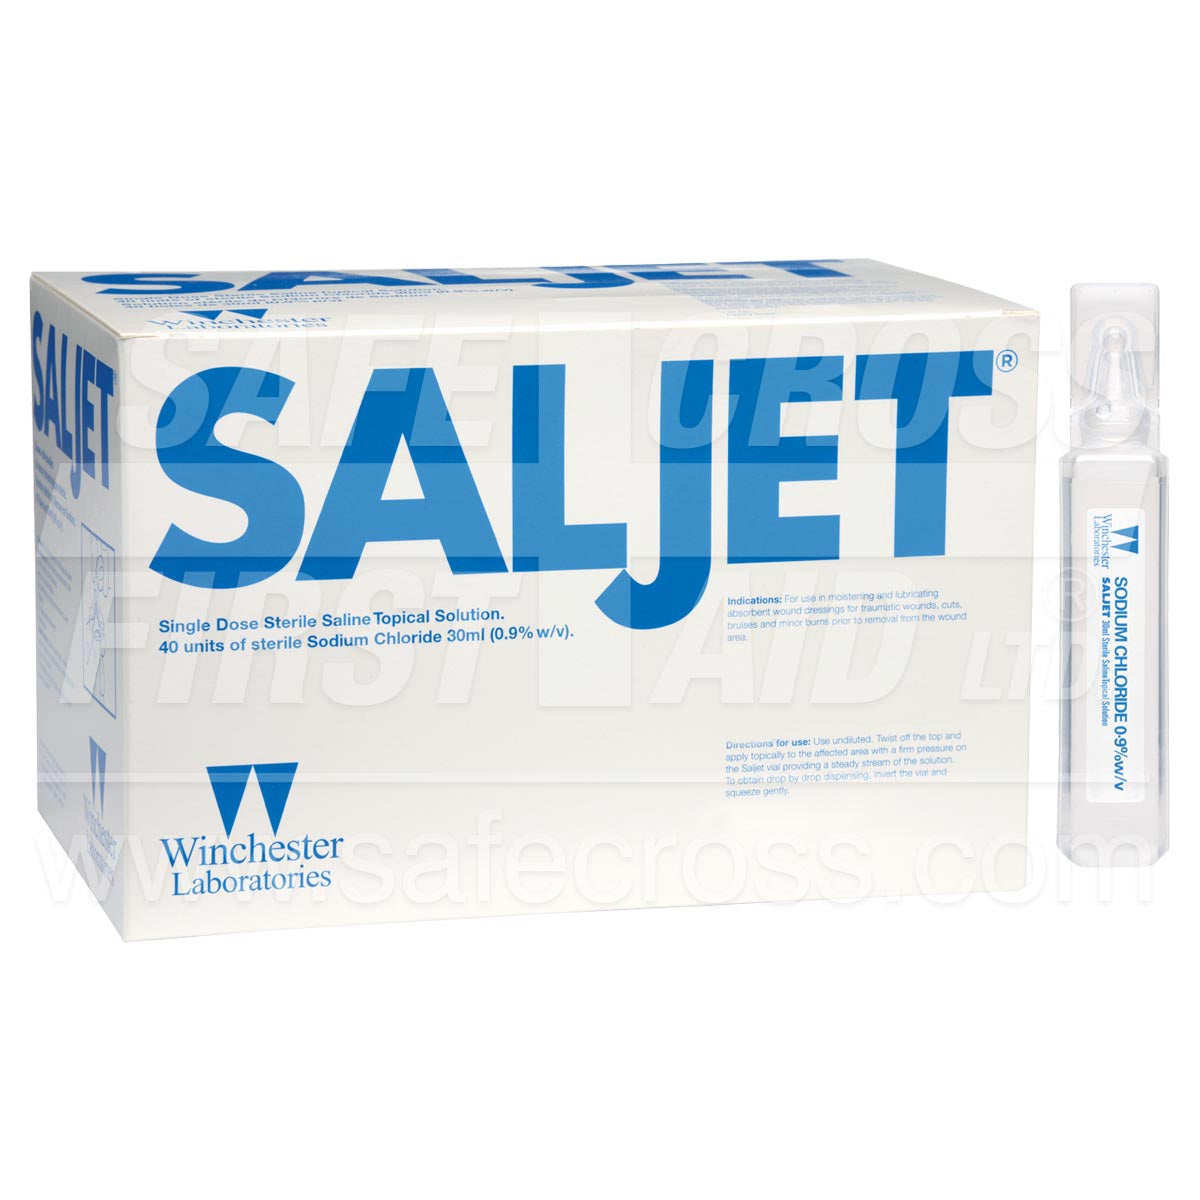 Saljet® Saline Topical Solution Sterile